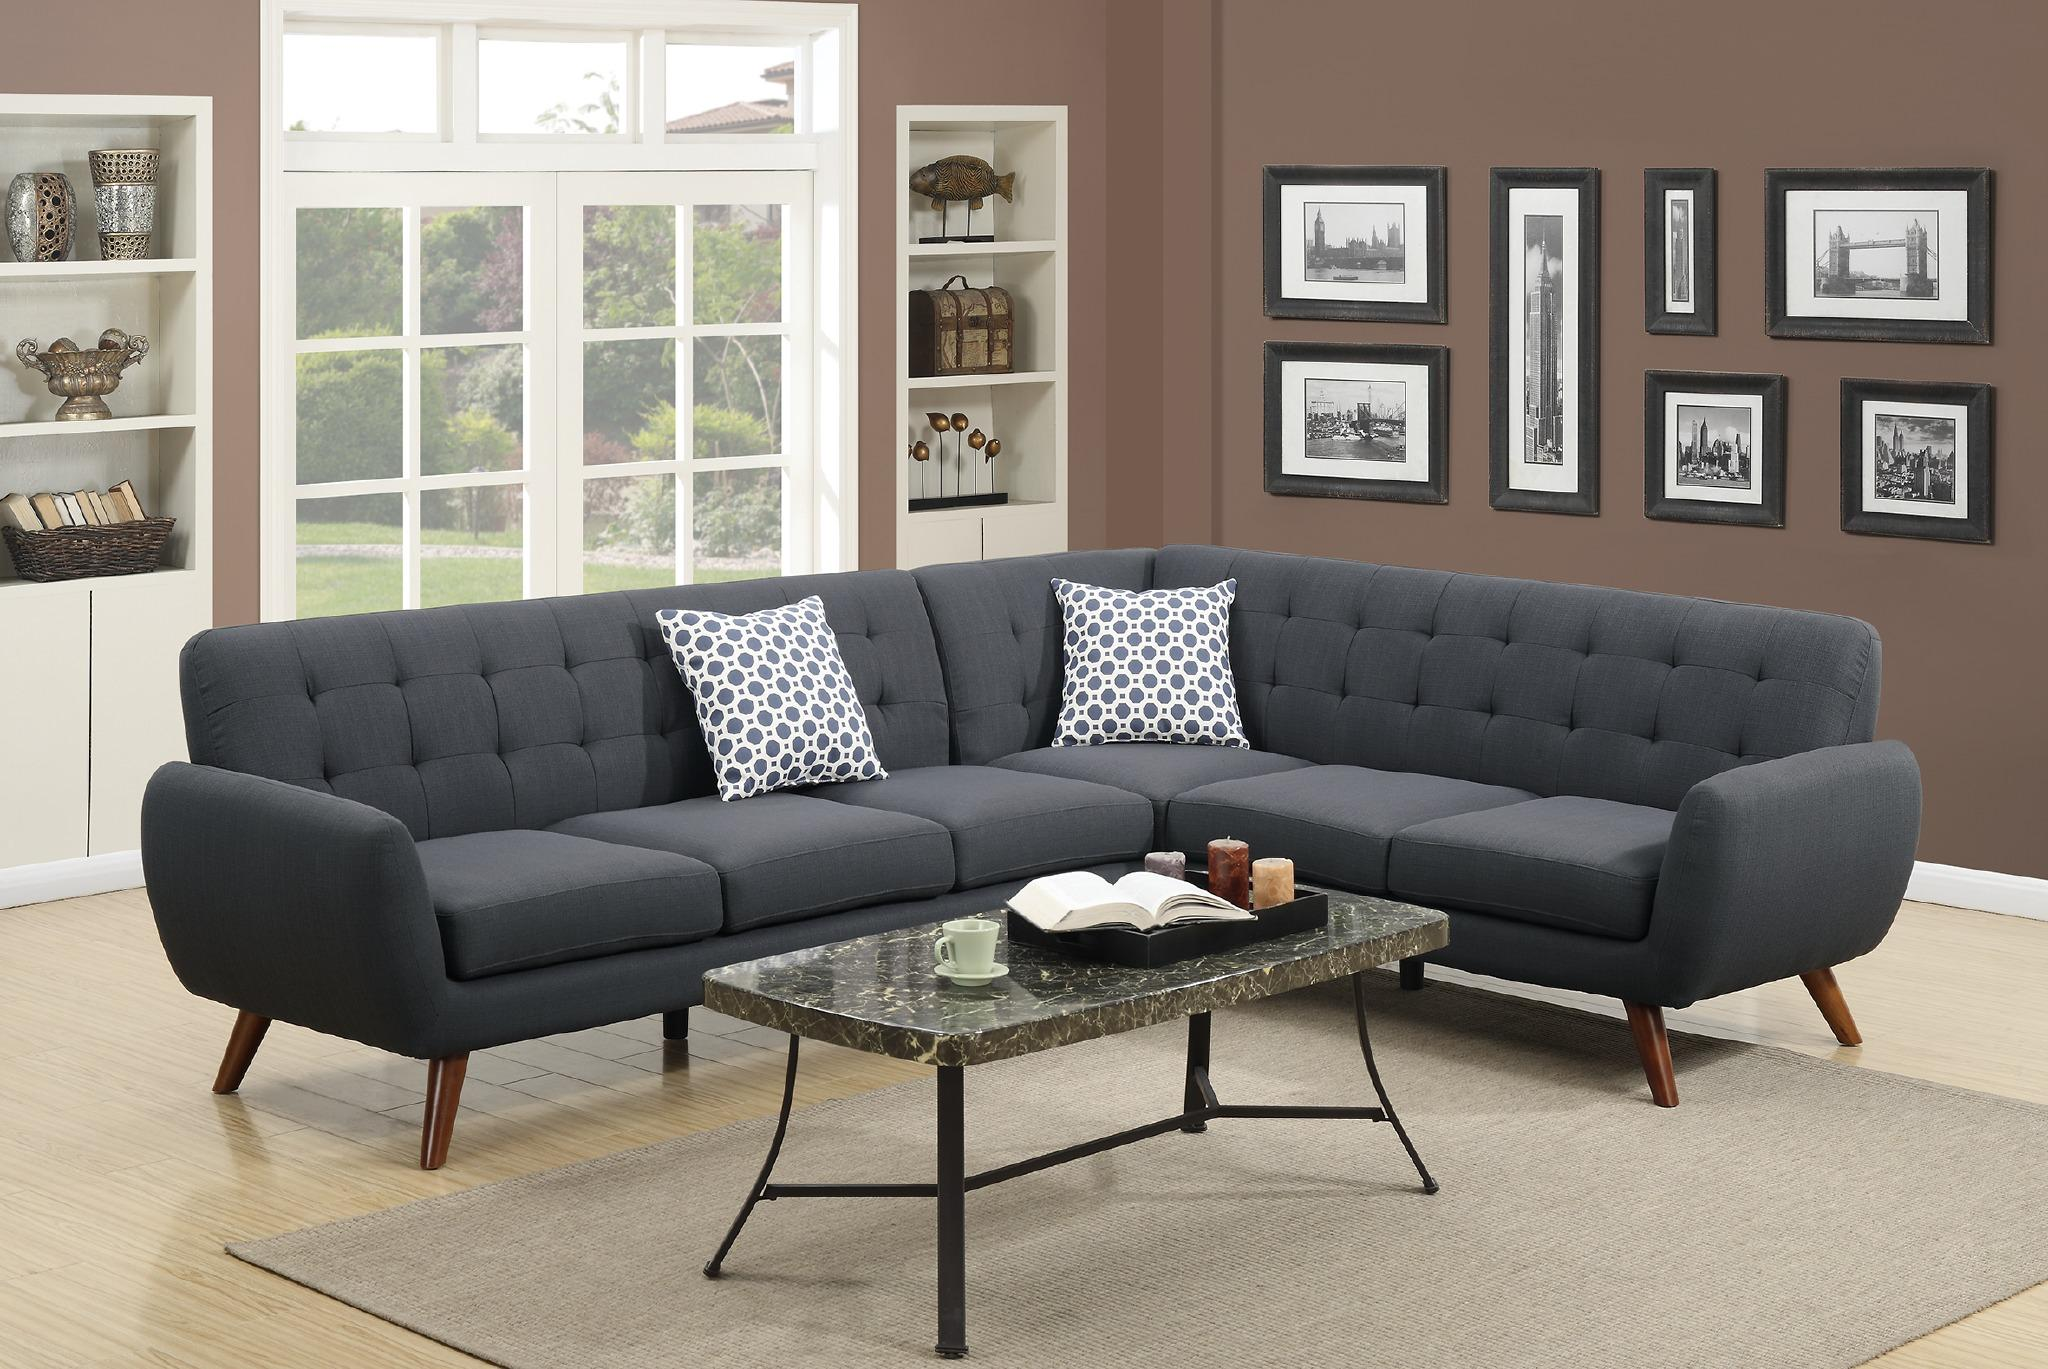 Modern Retro Sectional Sofa, Ash Black